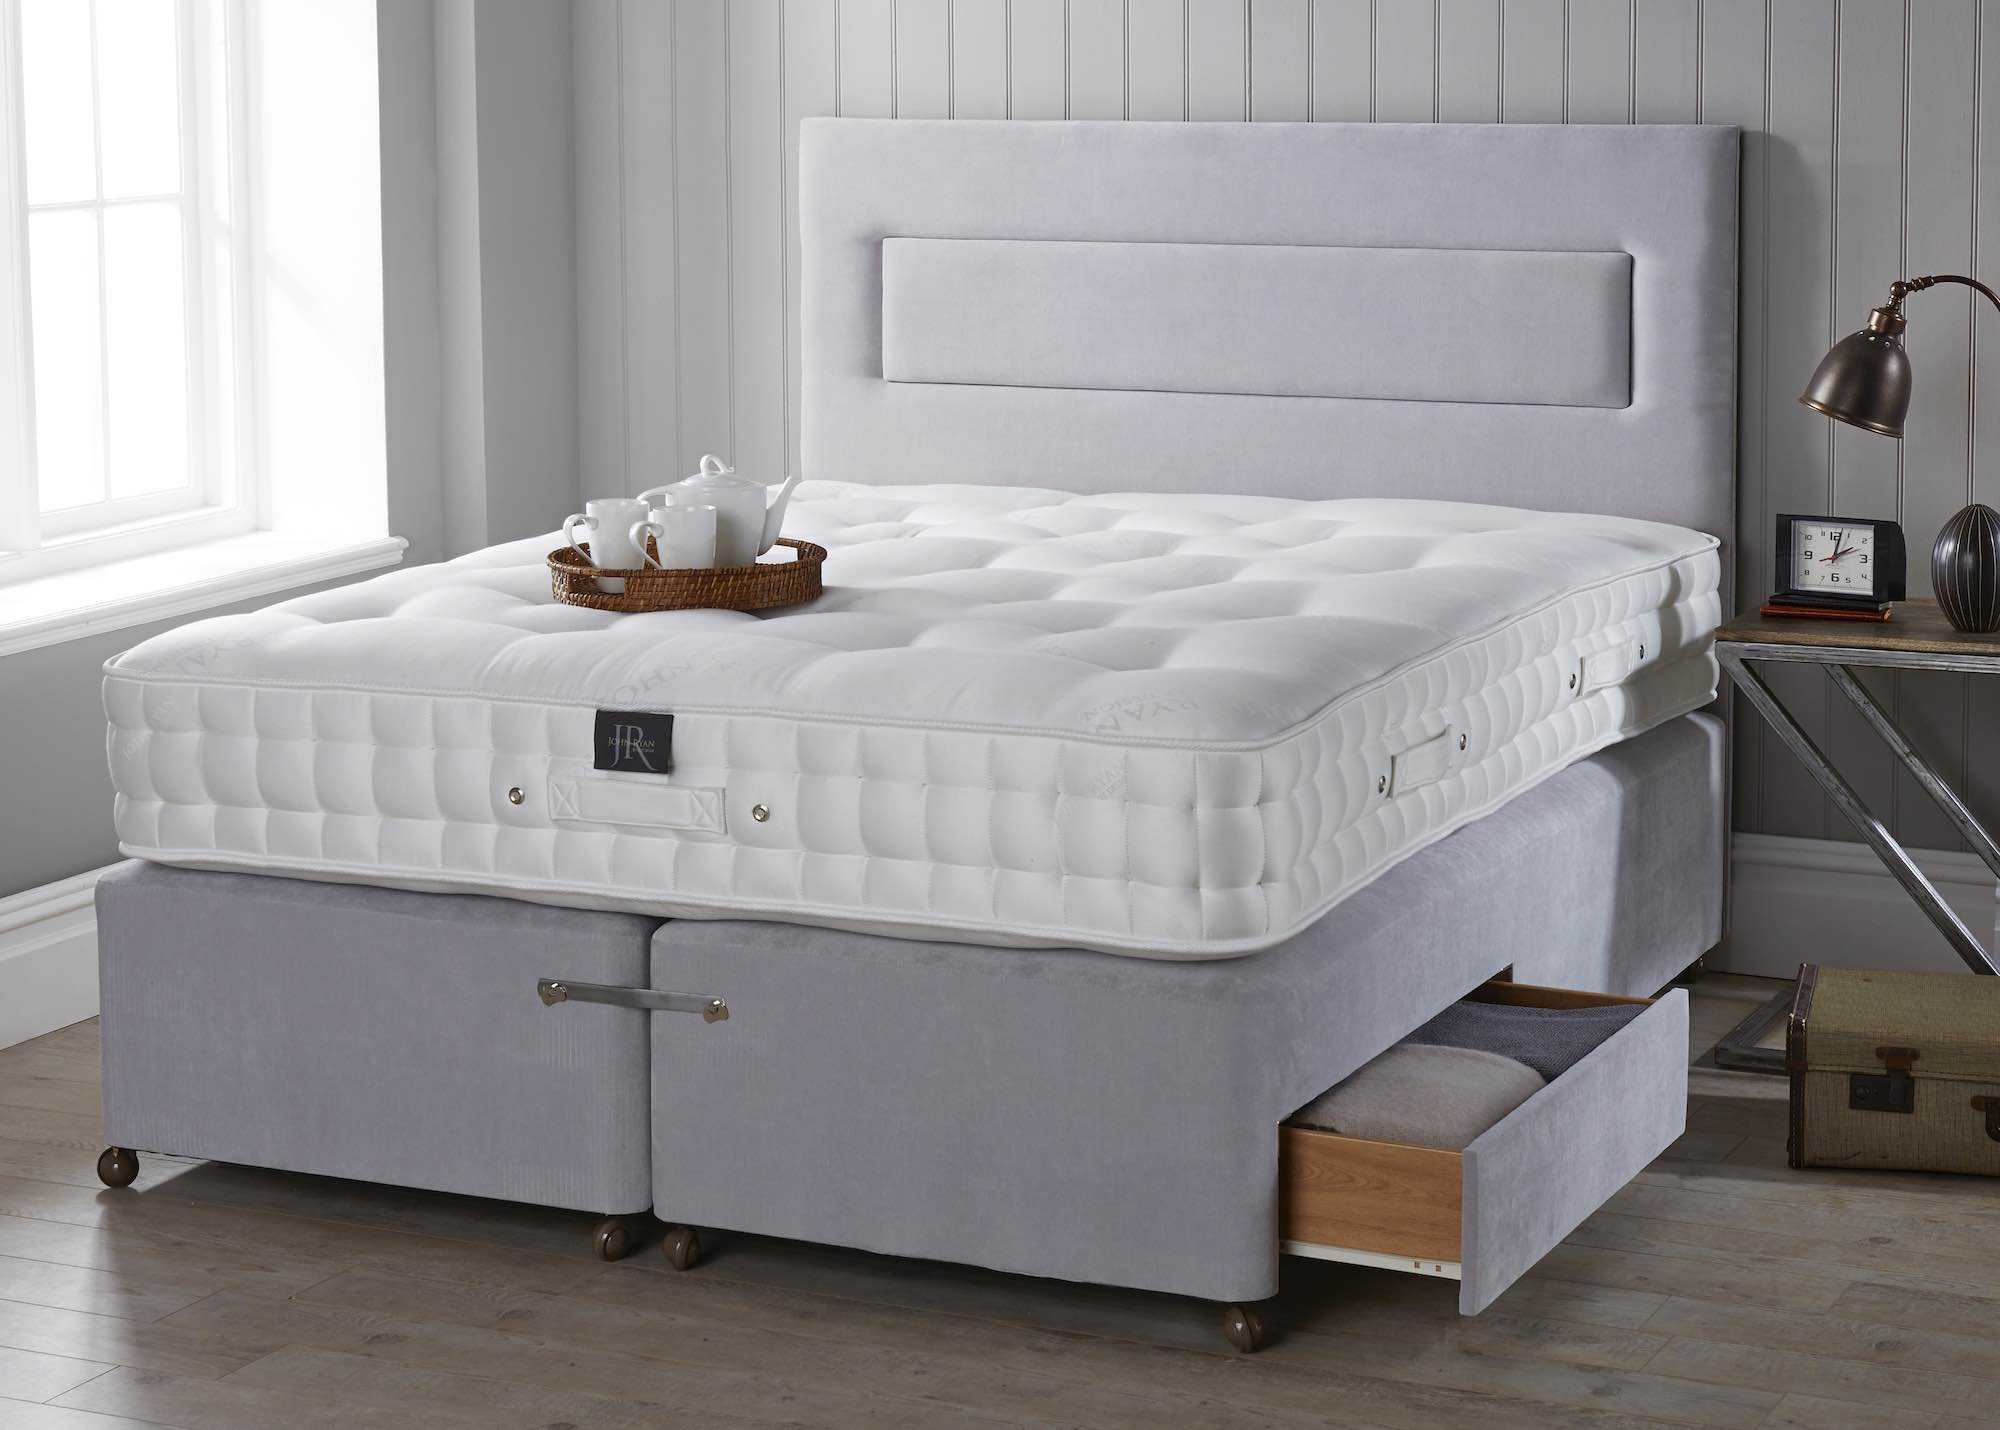 A thick mattress on a divan base